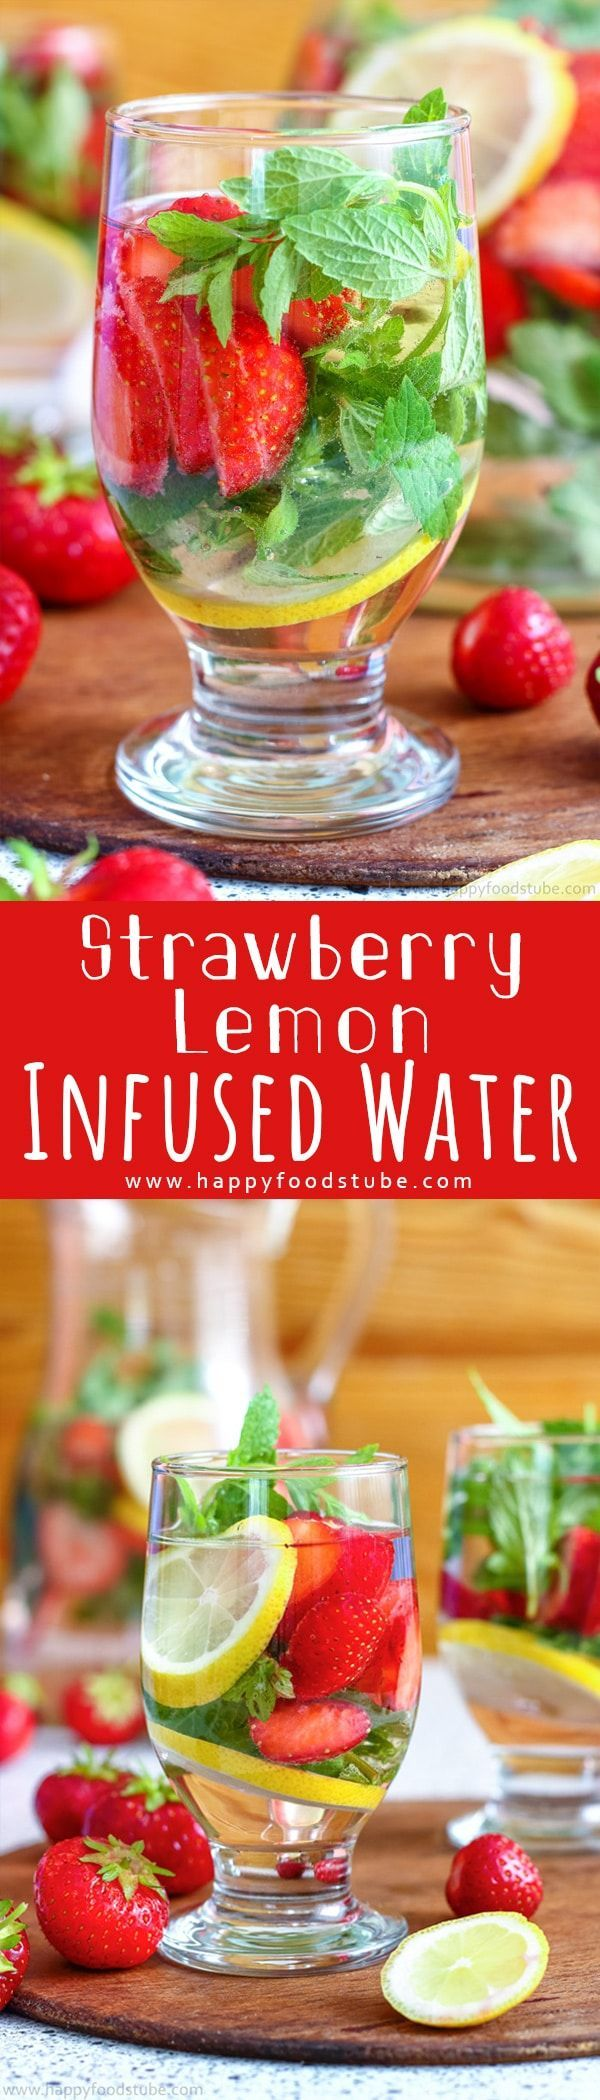 Strawberry Lemon Infused Water is a great drink for outdoor parties, barbecues or lazy pool days. Fresh strawberries, mint and lemon turn water into a tasty flavored drink. Healthy summer detox drinks recipe via @happyfoodstube